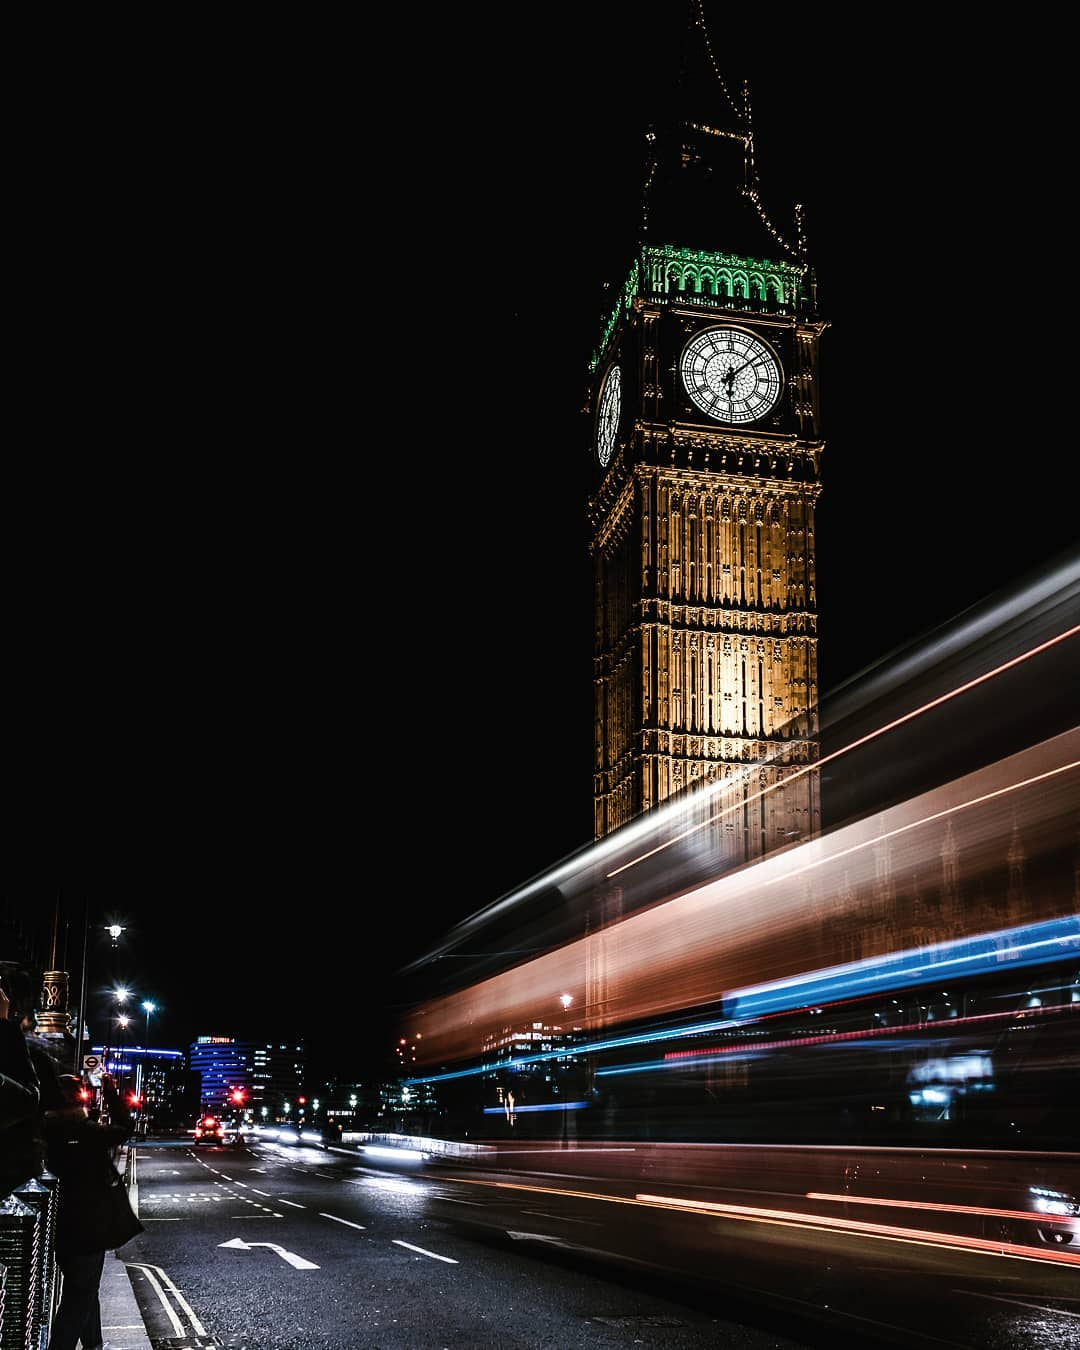 ulična-fotografija-london-big-ben-autobus